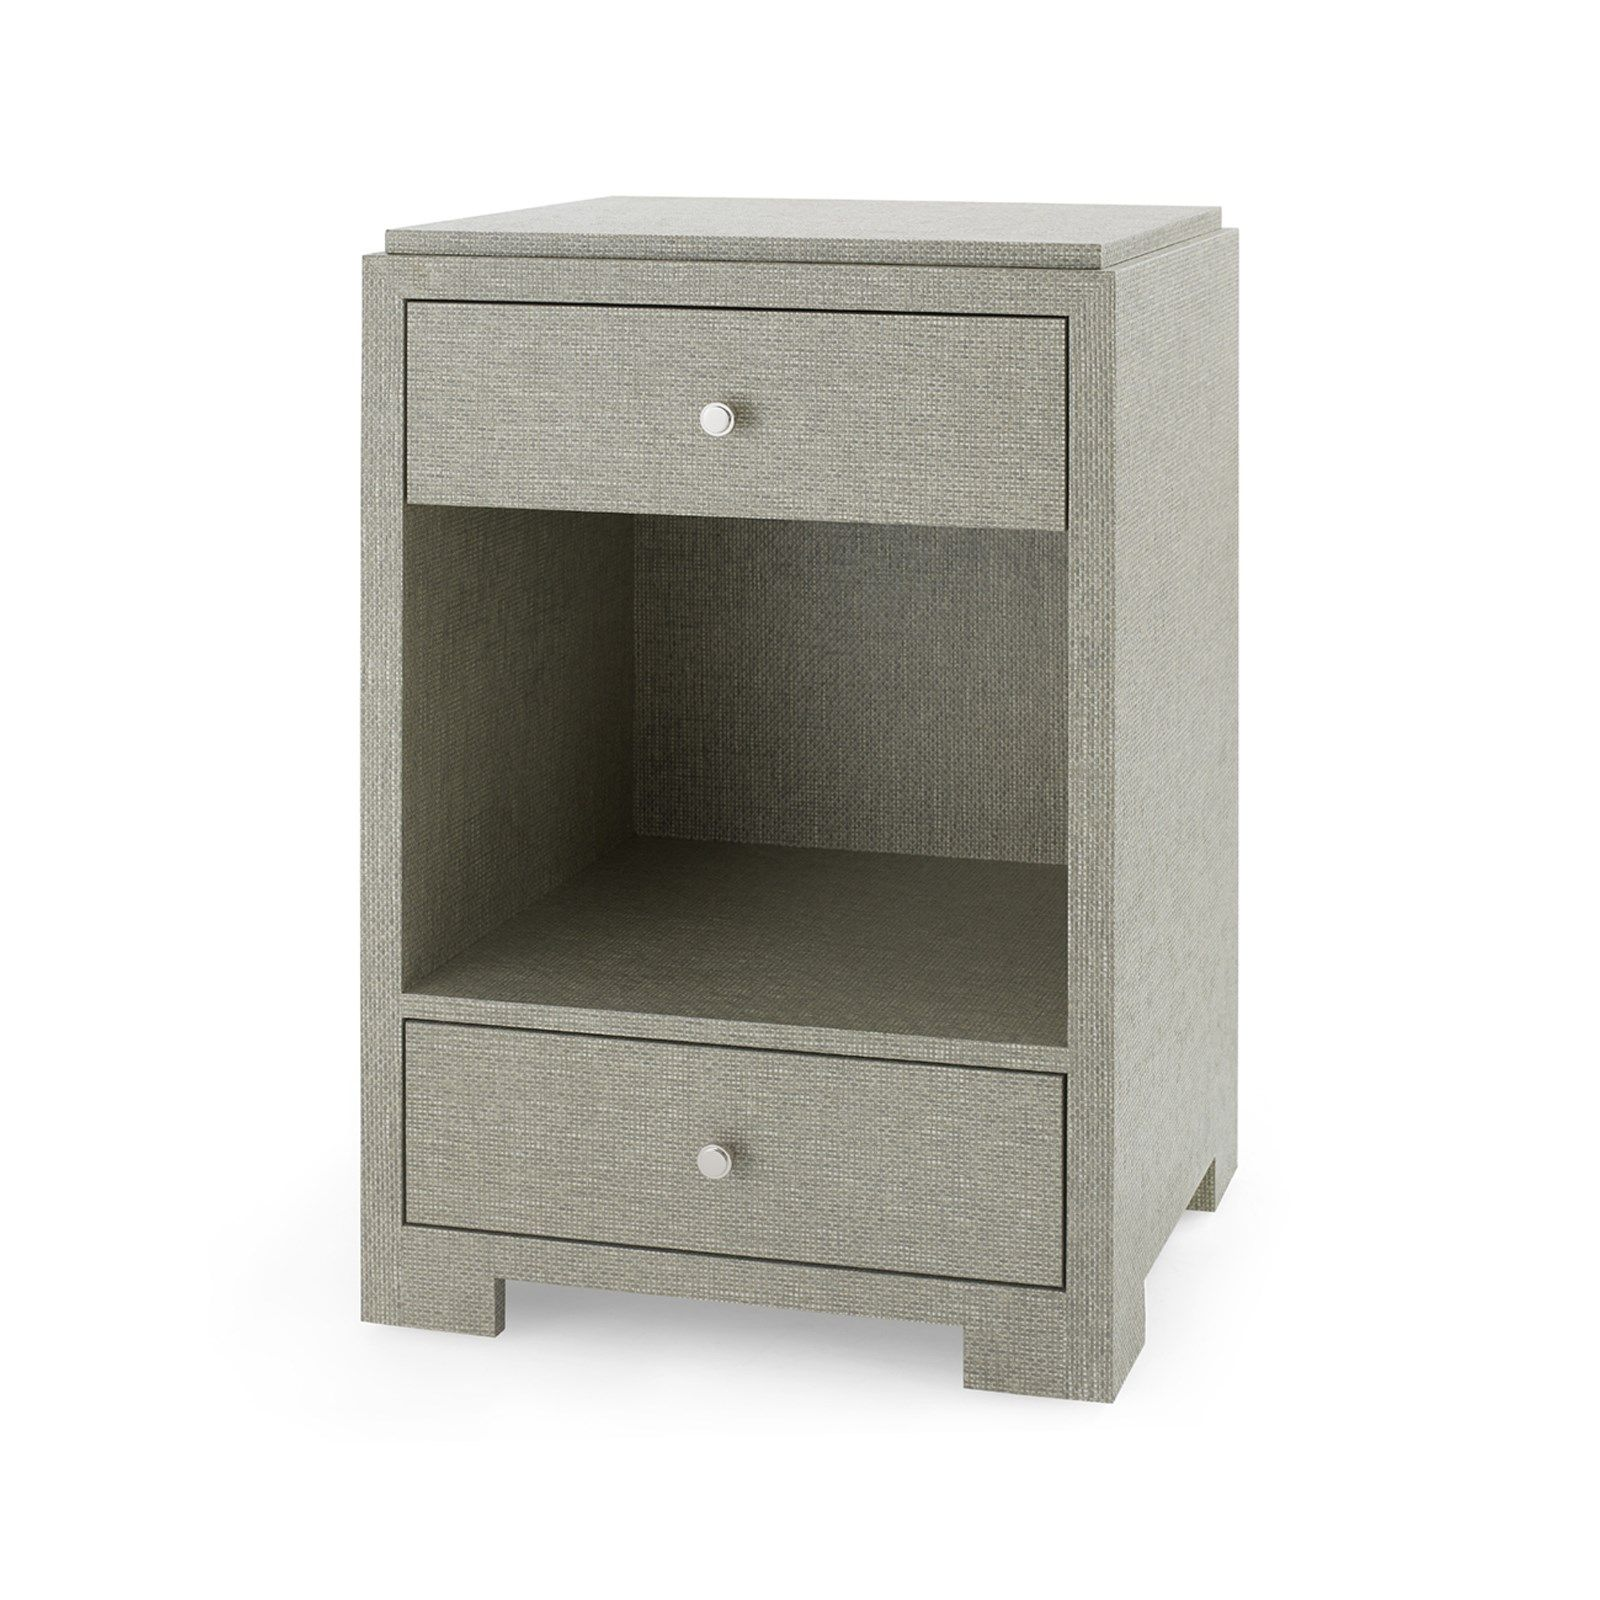 Bungalow 5 - FEDOR 2-DRAWER SIDE TABLE, MOSS GRAY TWEED